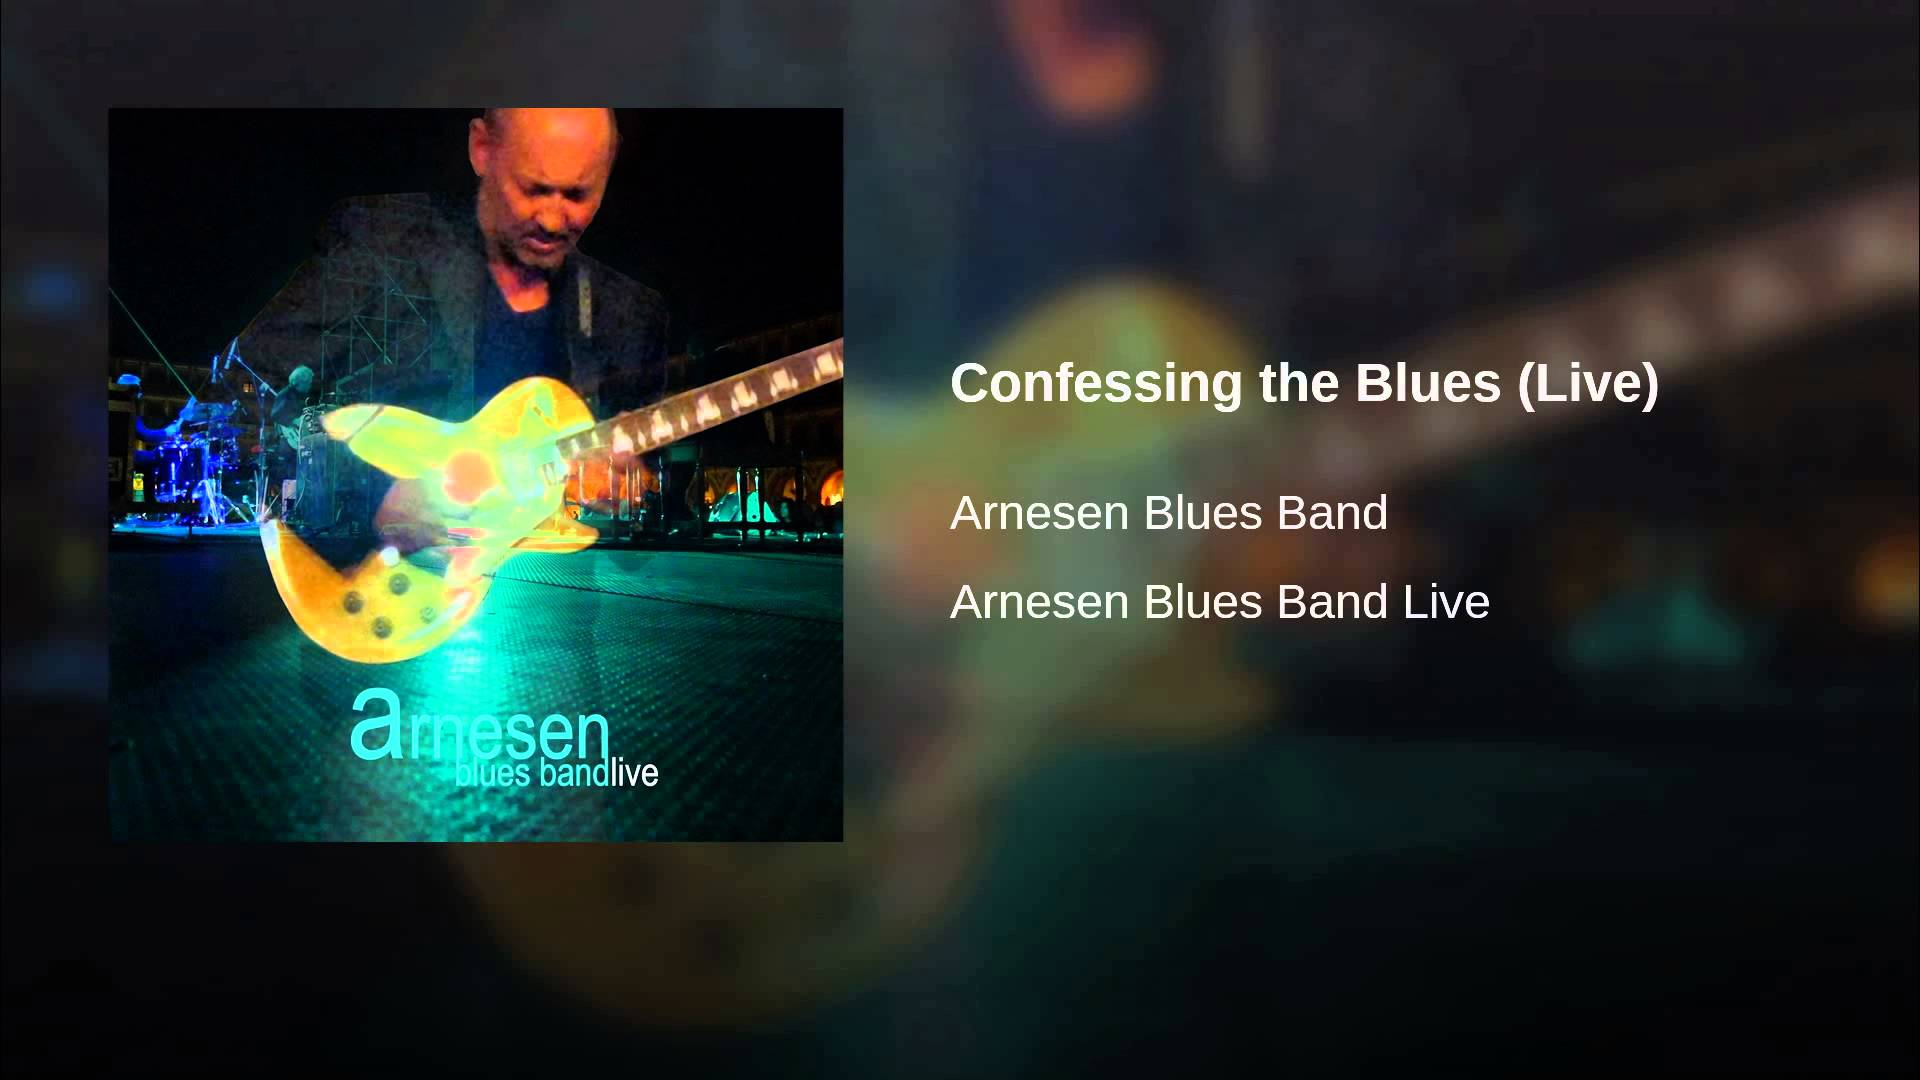 Confessing the Blues (Live)